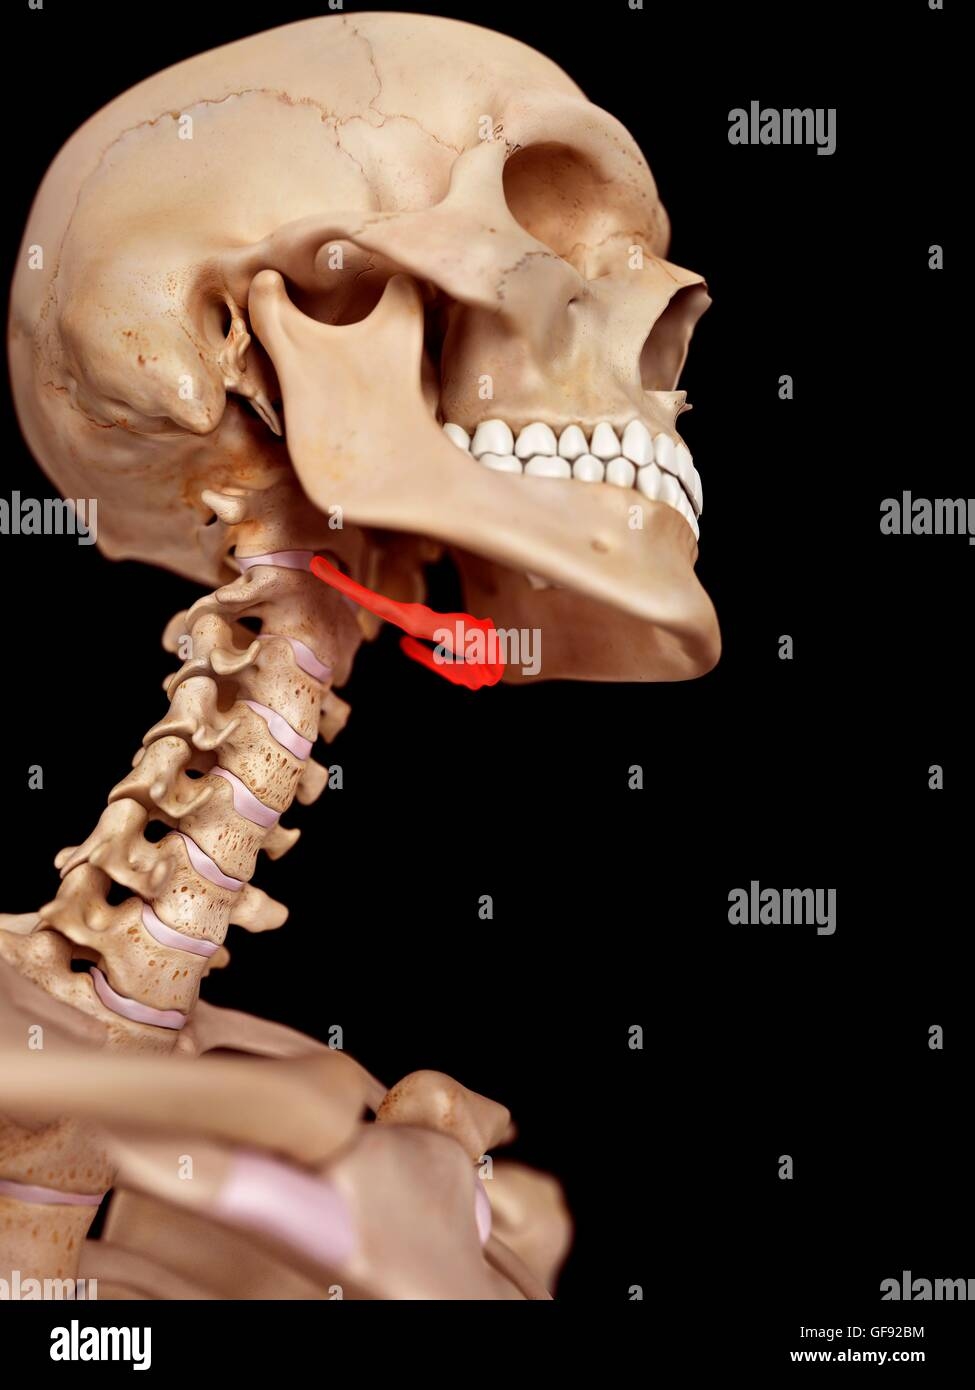 The Hyoid Bone Stockfotos & The Hyoid Bone Bilder - Alamy